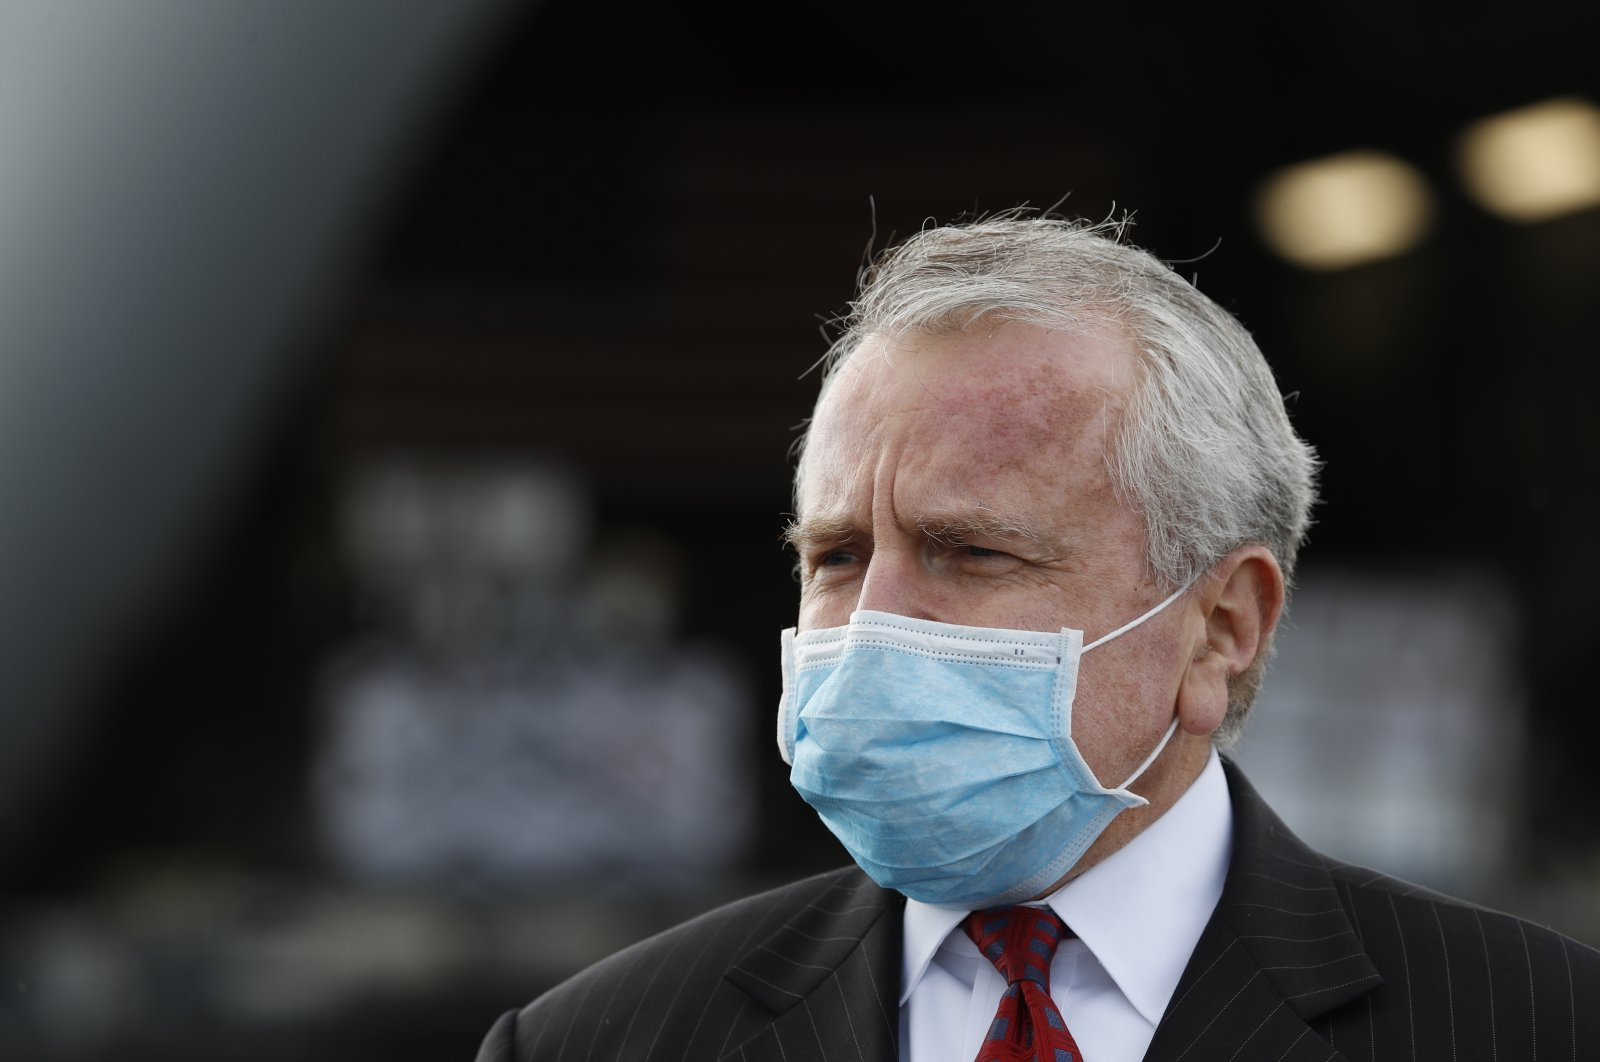 U.S. ambassador to Russia John Sullivan wearing a protective face mask stands next to a U.S. Air Force C-17 Globemaster transport plane at Vnukovo International Airport amid the outbreak of the COVID-19 pandemic, Moscow, Russia, May 21, 2020. (EPA Photo)